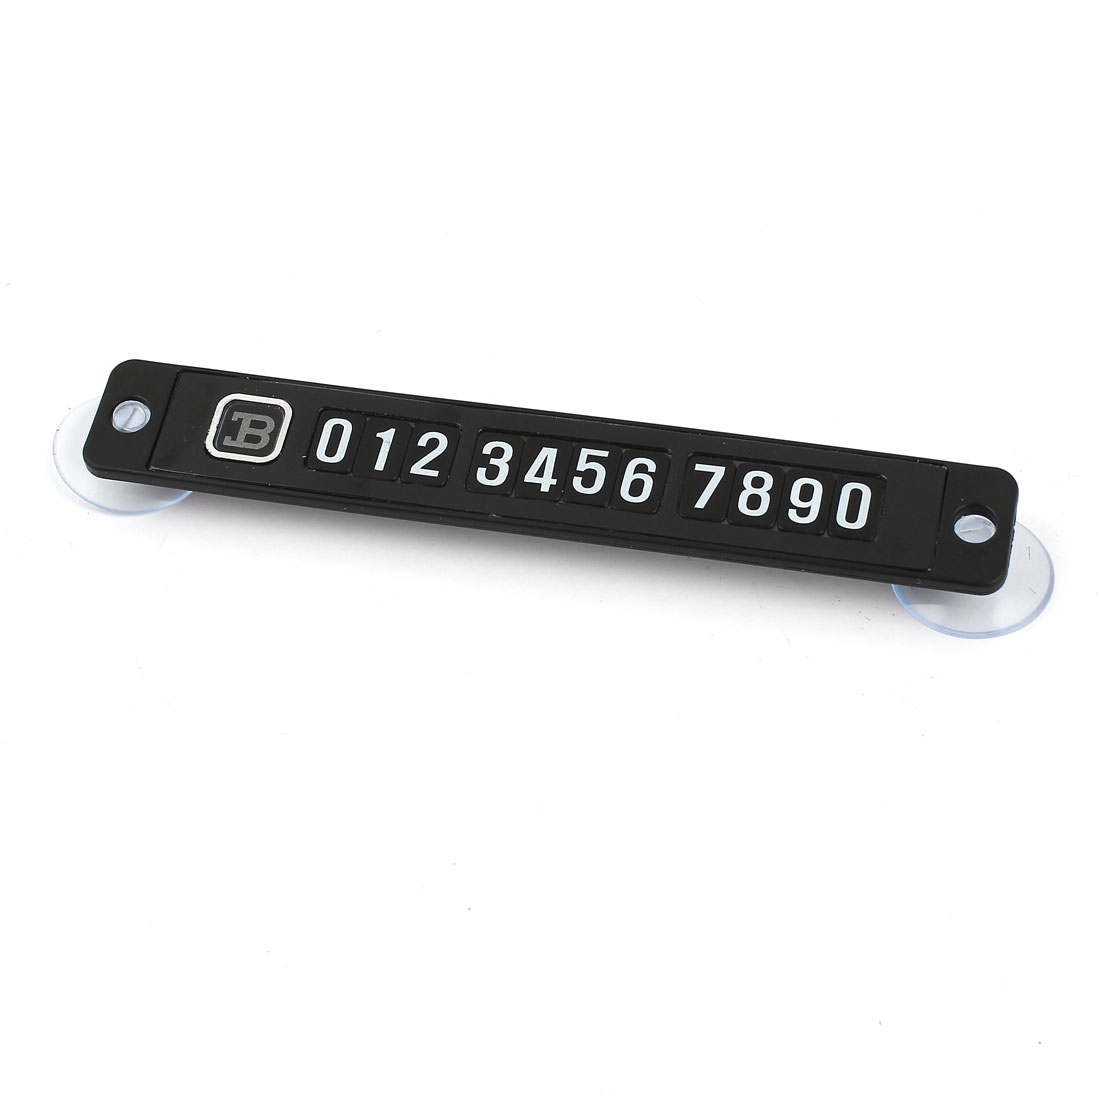 Rectangular Slim Puzzle Phone Number Magnetic Parking Plate for Car